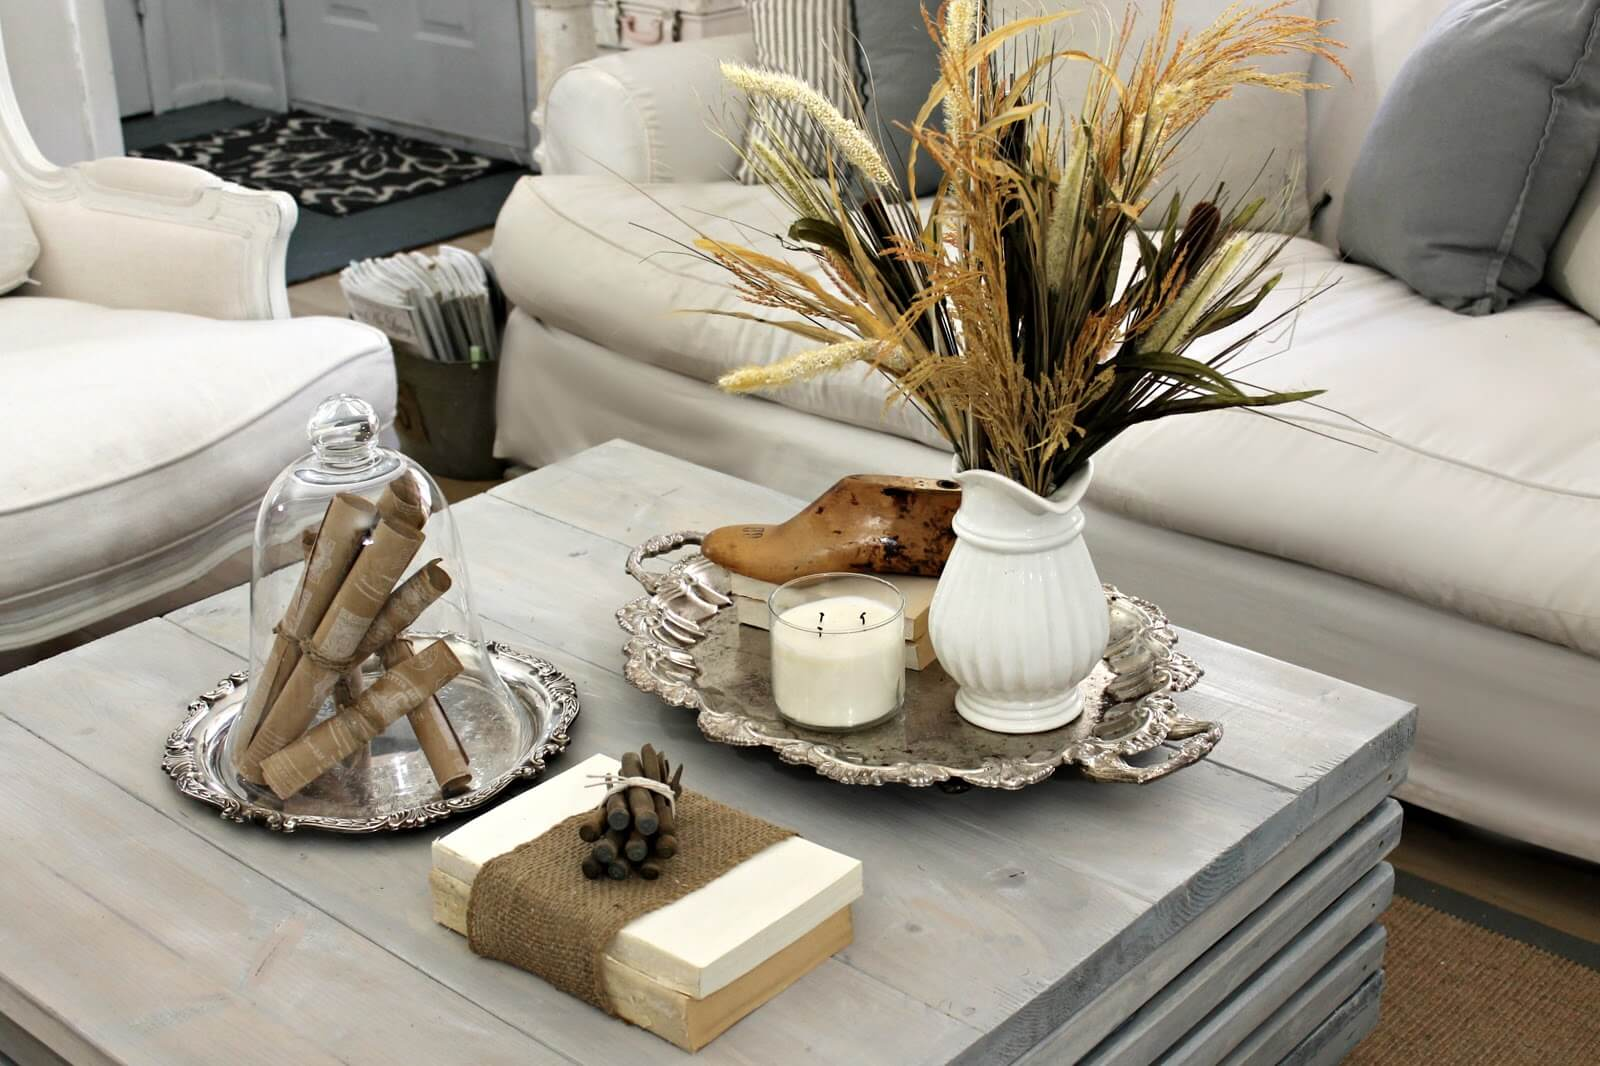 Earth-toned Brown and White Natural Element Display with Silver Accents